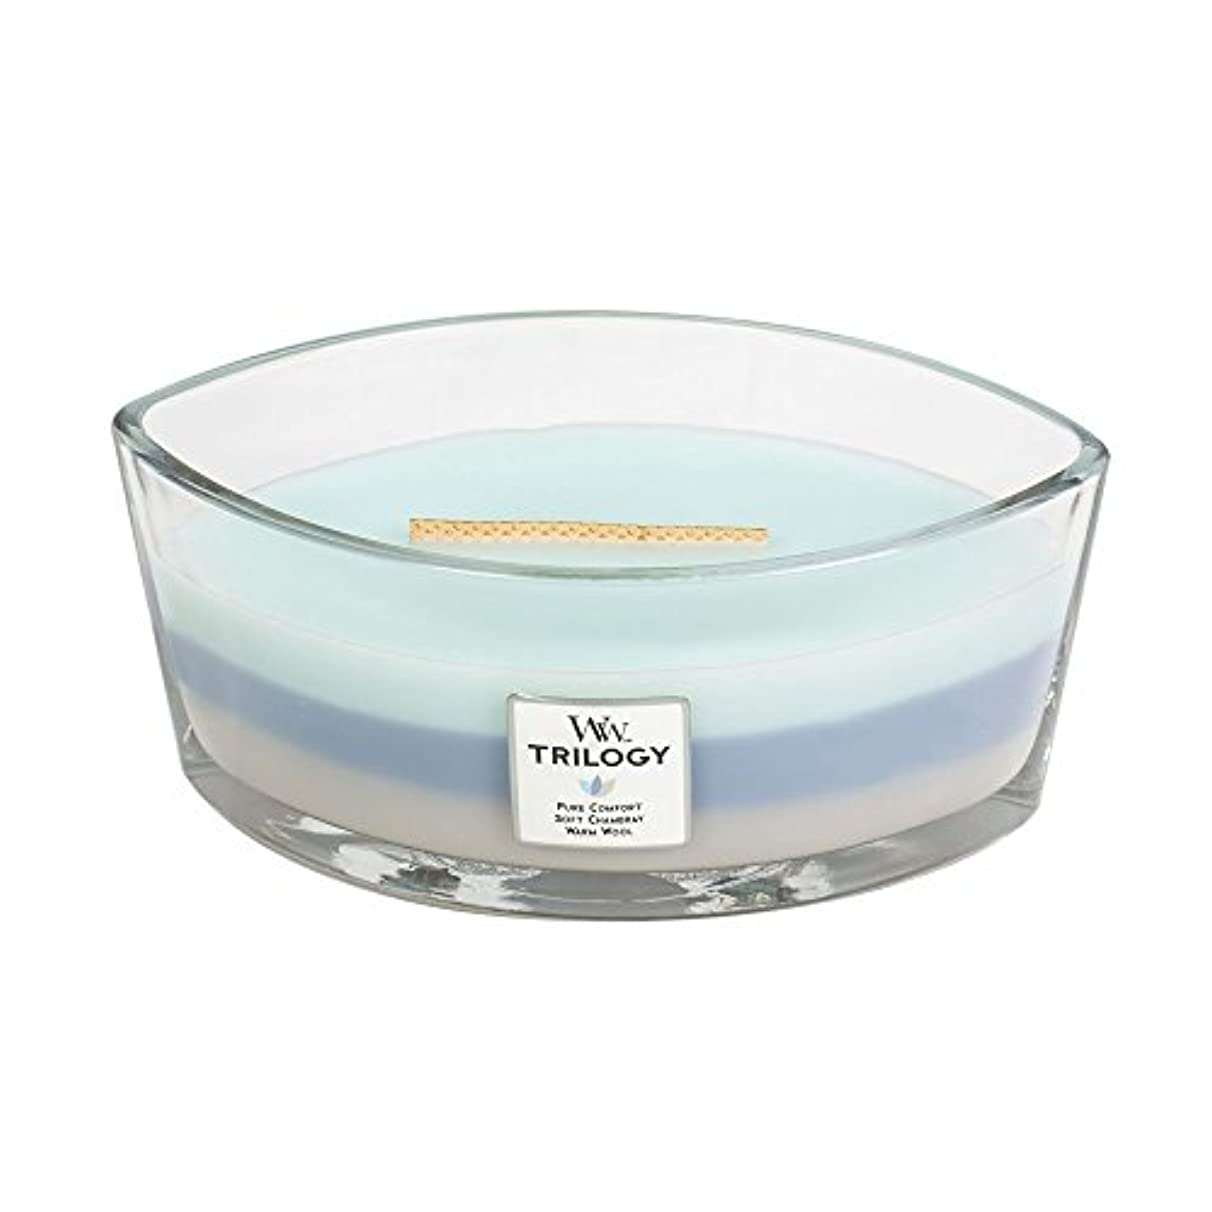 WoodWick Trilogy WOVEN COMFORTS, 3-in-1 Highly Scented Candle, Ellipse Glass Jar with Original HearthWick Flame...